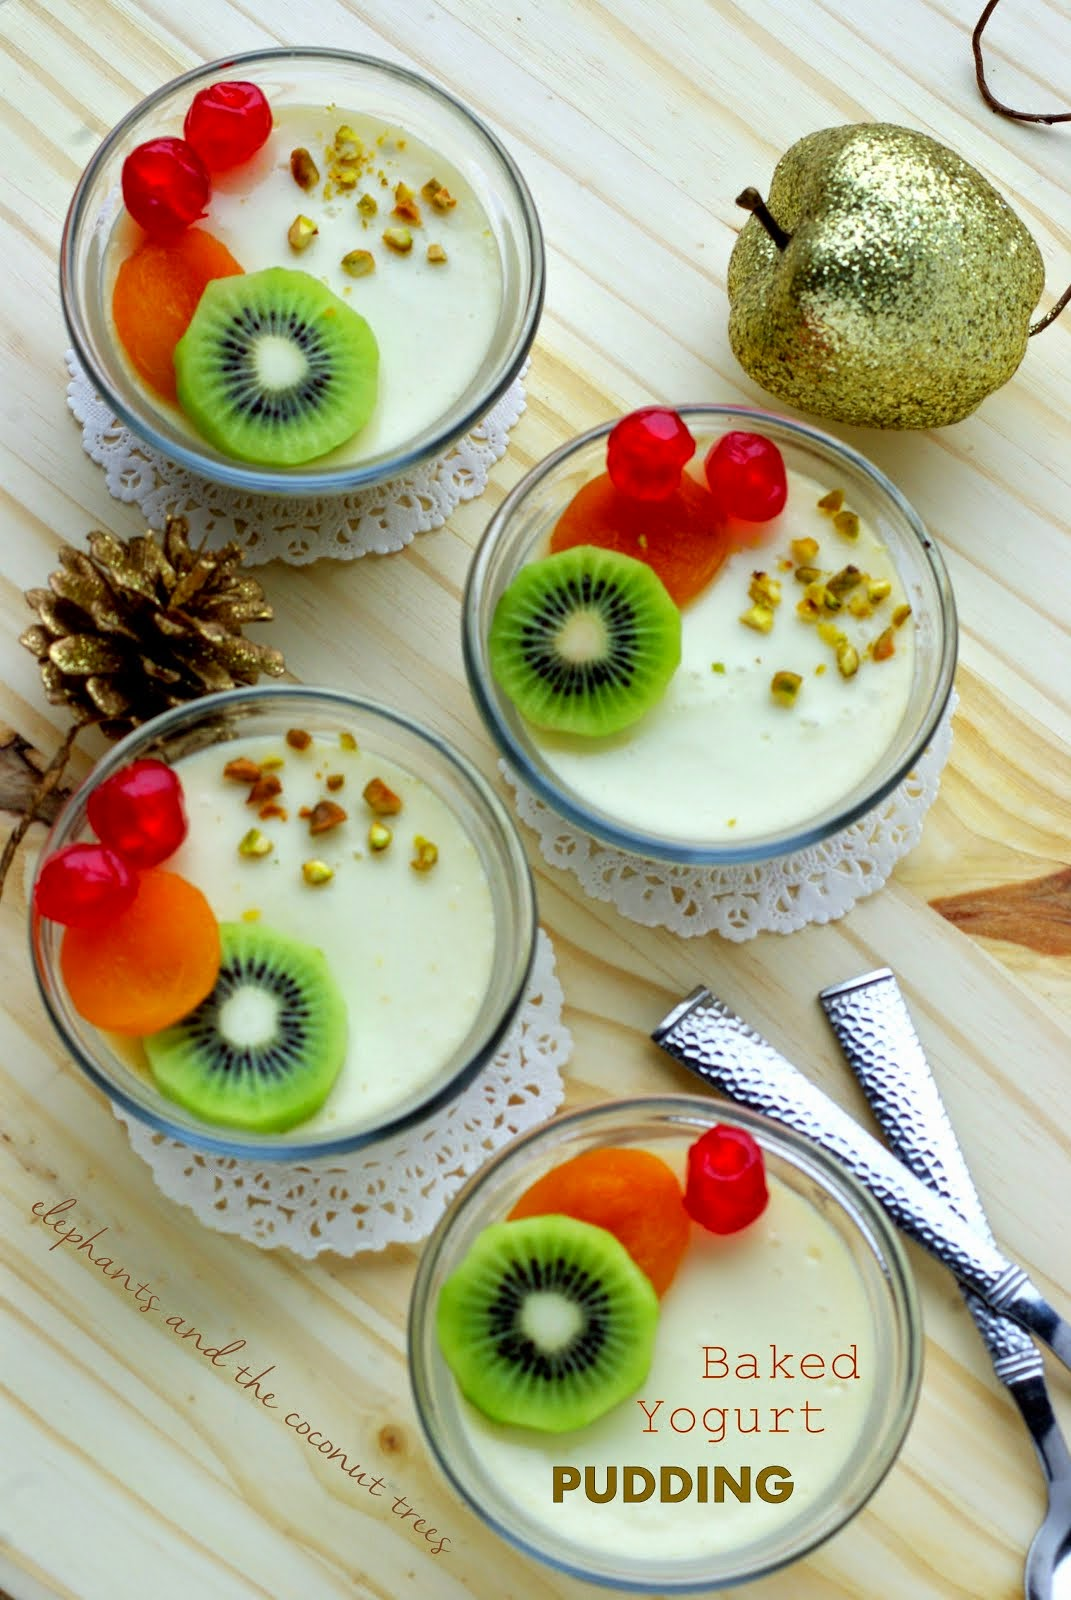 Baked Yogurt Pudding